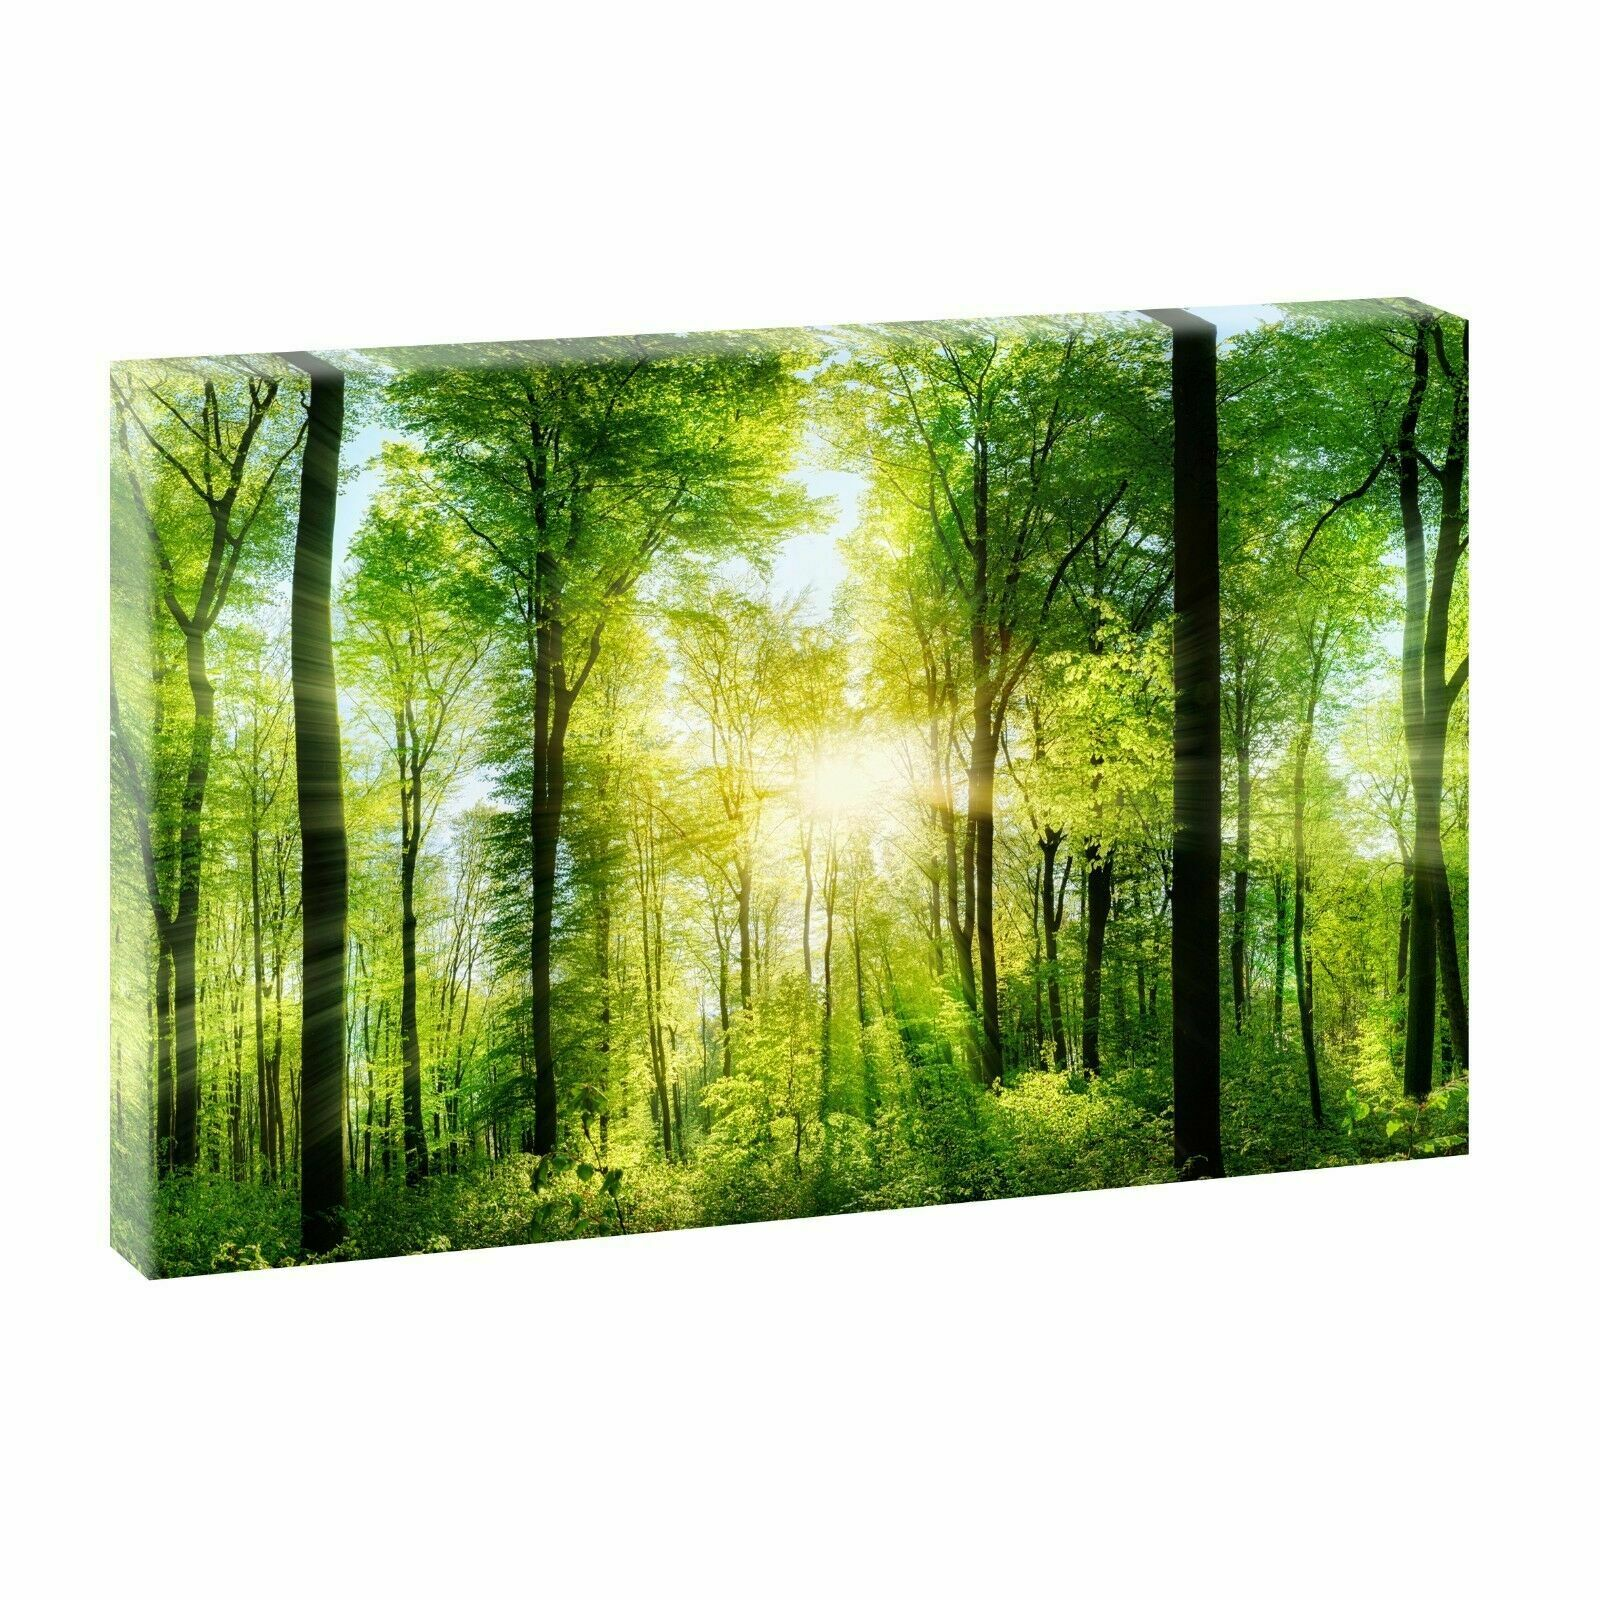 wald bild auf leinwand poster wandbilder deko natur xxl. Black Bedroom Furniture Sets. Home Design Ideas